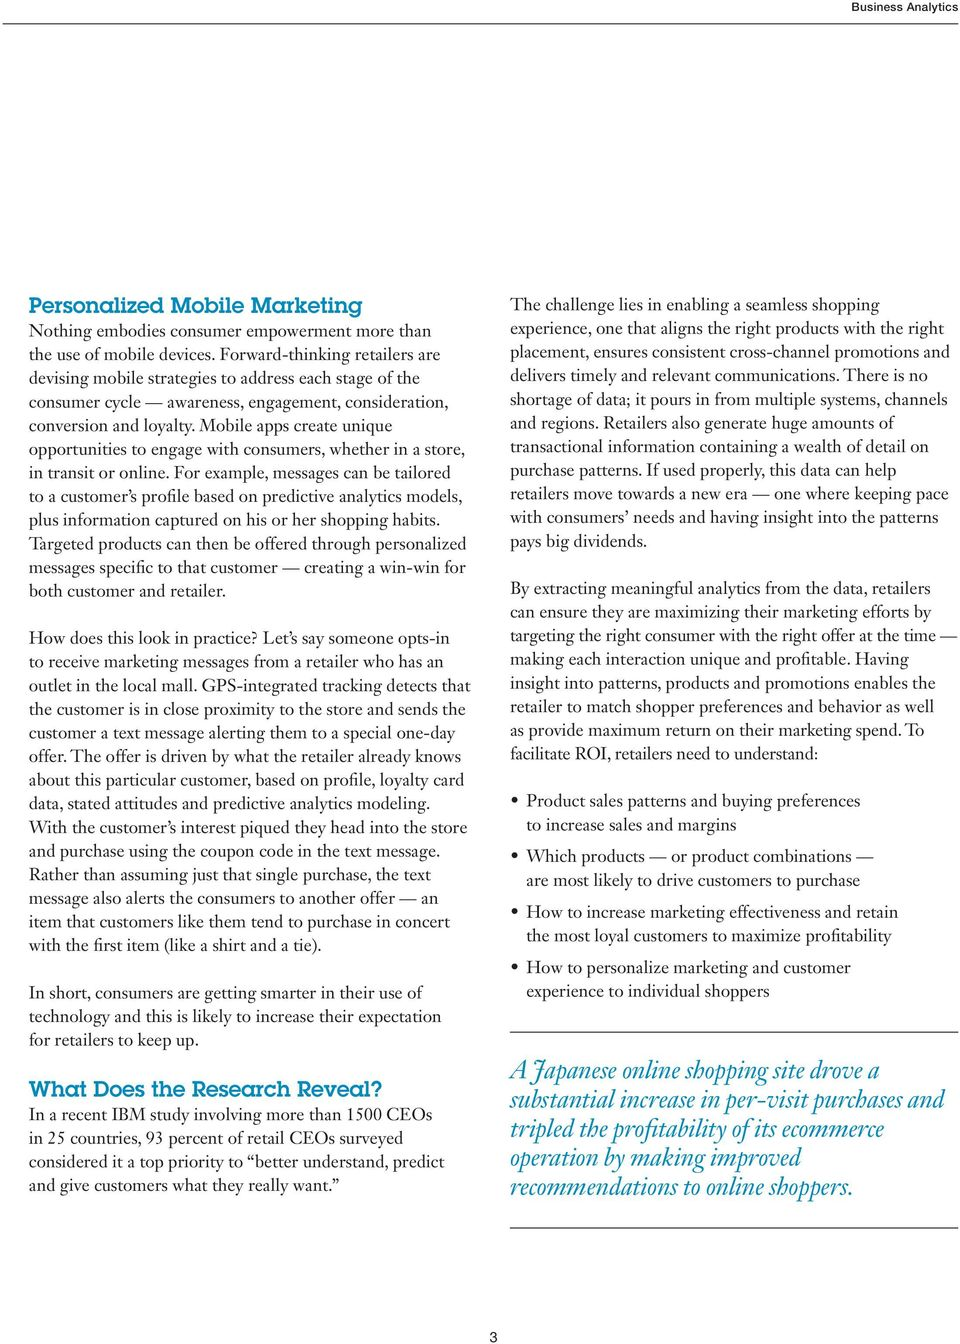 Mobile apps create unique opportunities to engage with consumers, whether in a store, in transit or online.